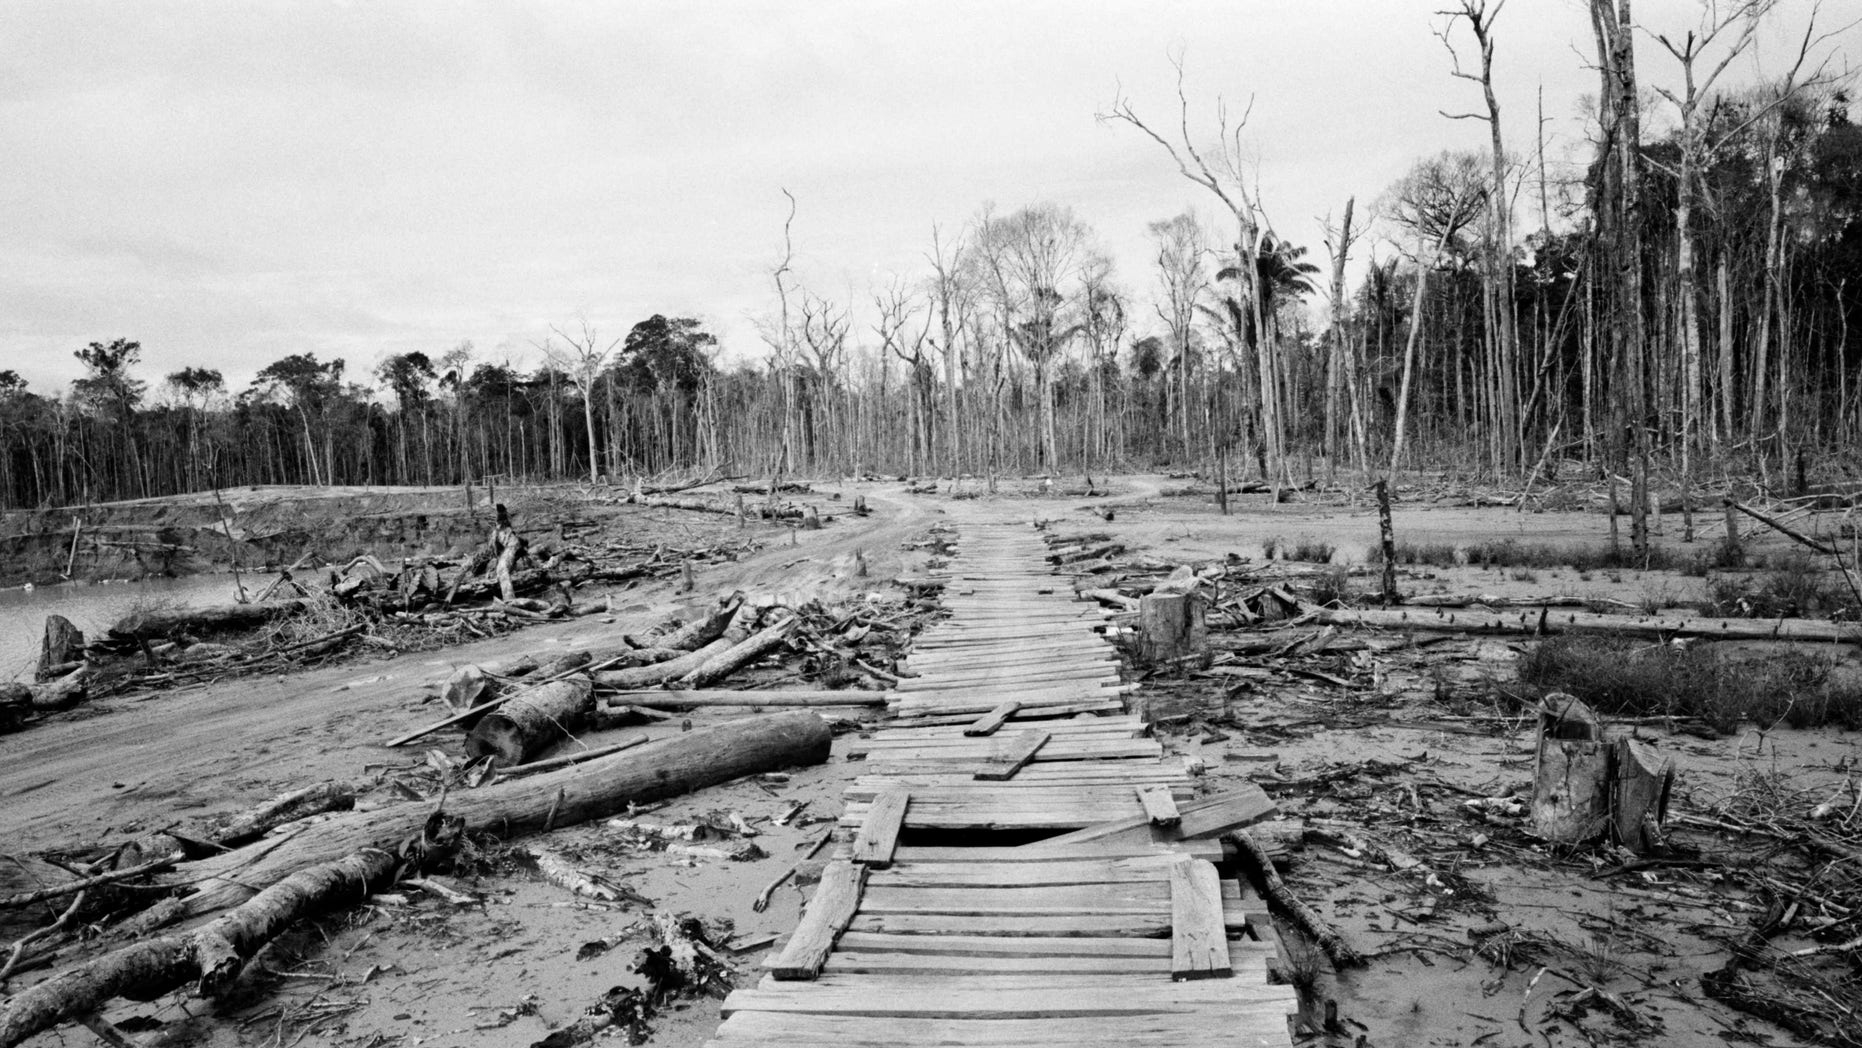 May 16, 2014: Wood slats serve as a makeshift walkway built by wildcat miners, at an abandoned mining camp, in La Pampa in Peru's Madre de Dios region.